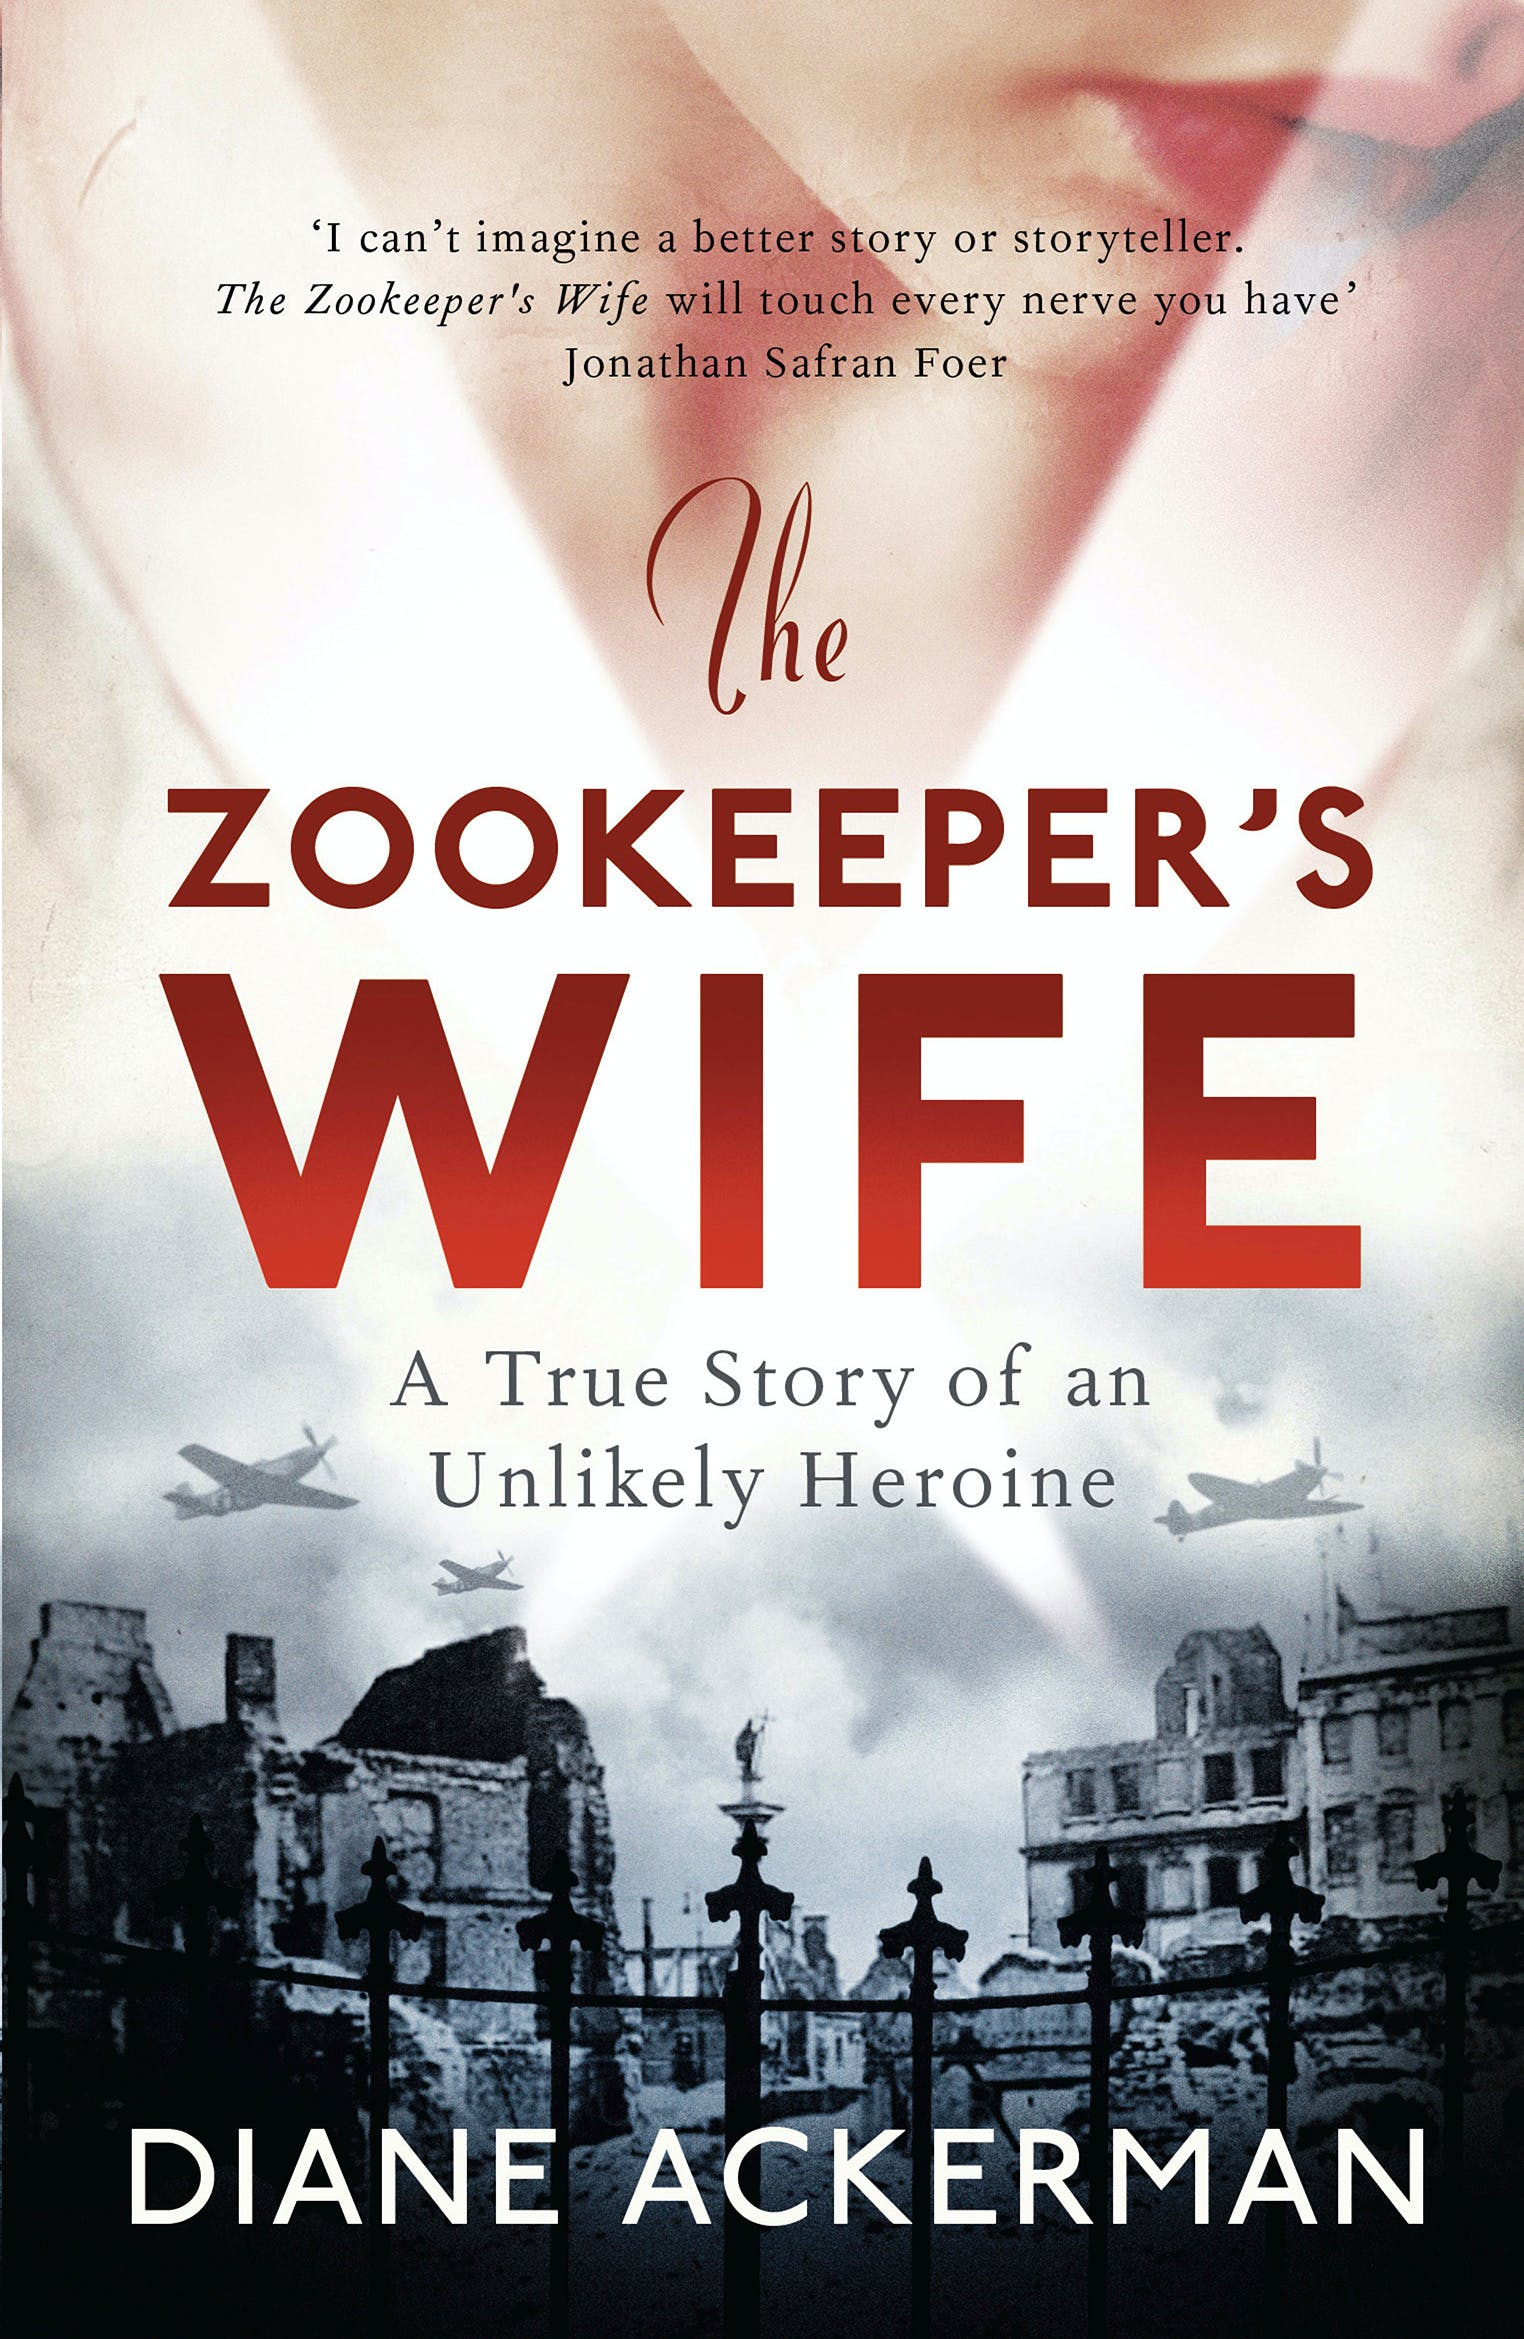 The Zookeeper's Wife: An unforgettable true story, now a